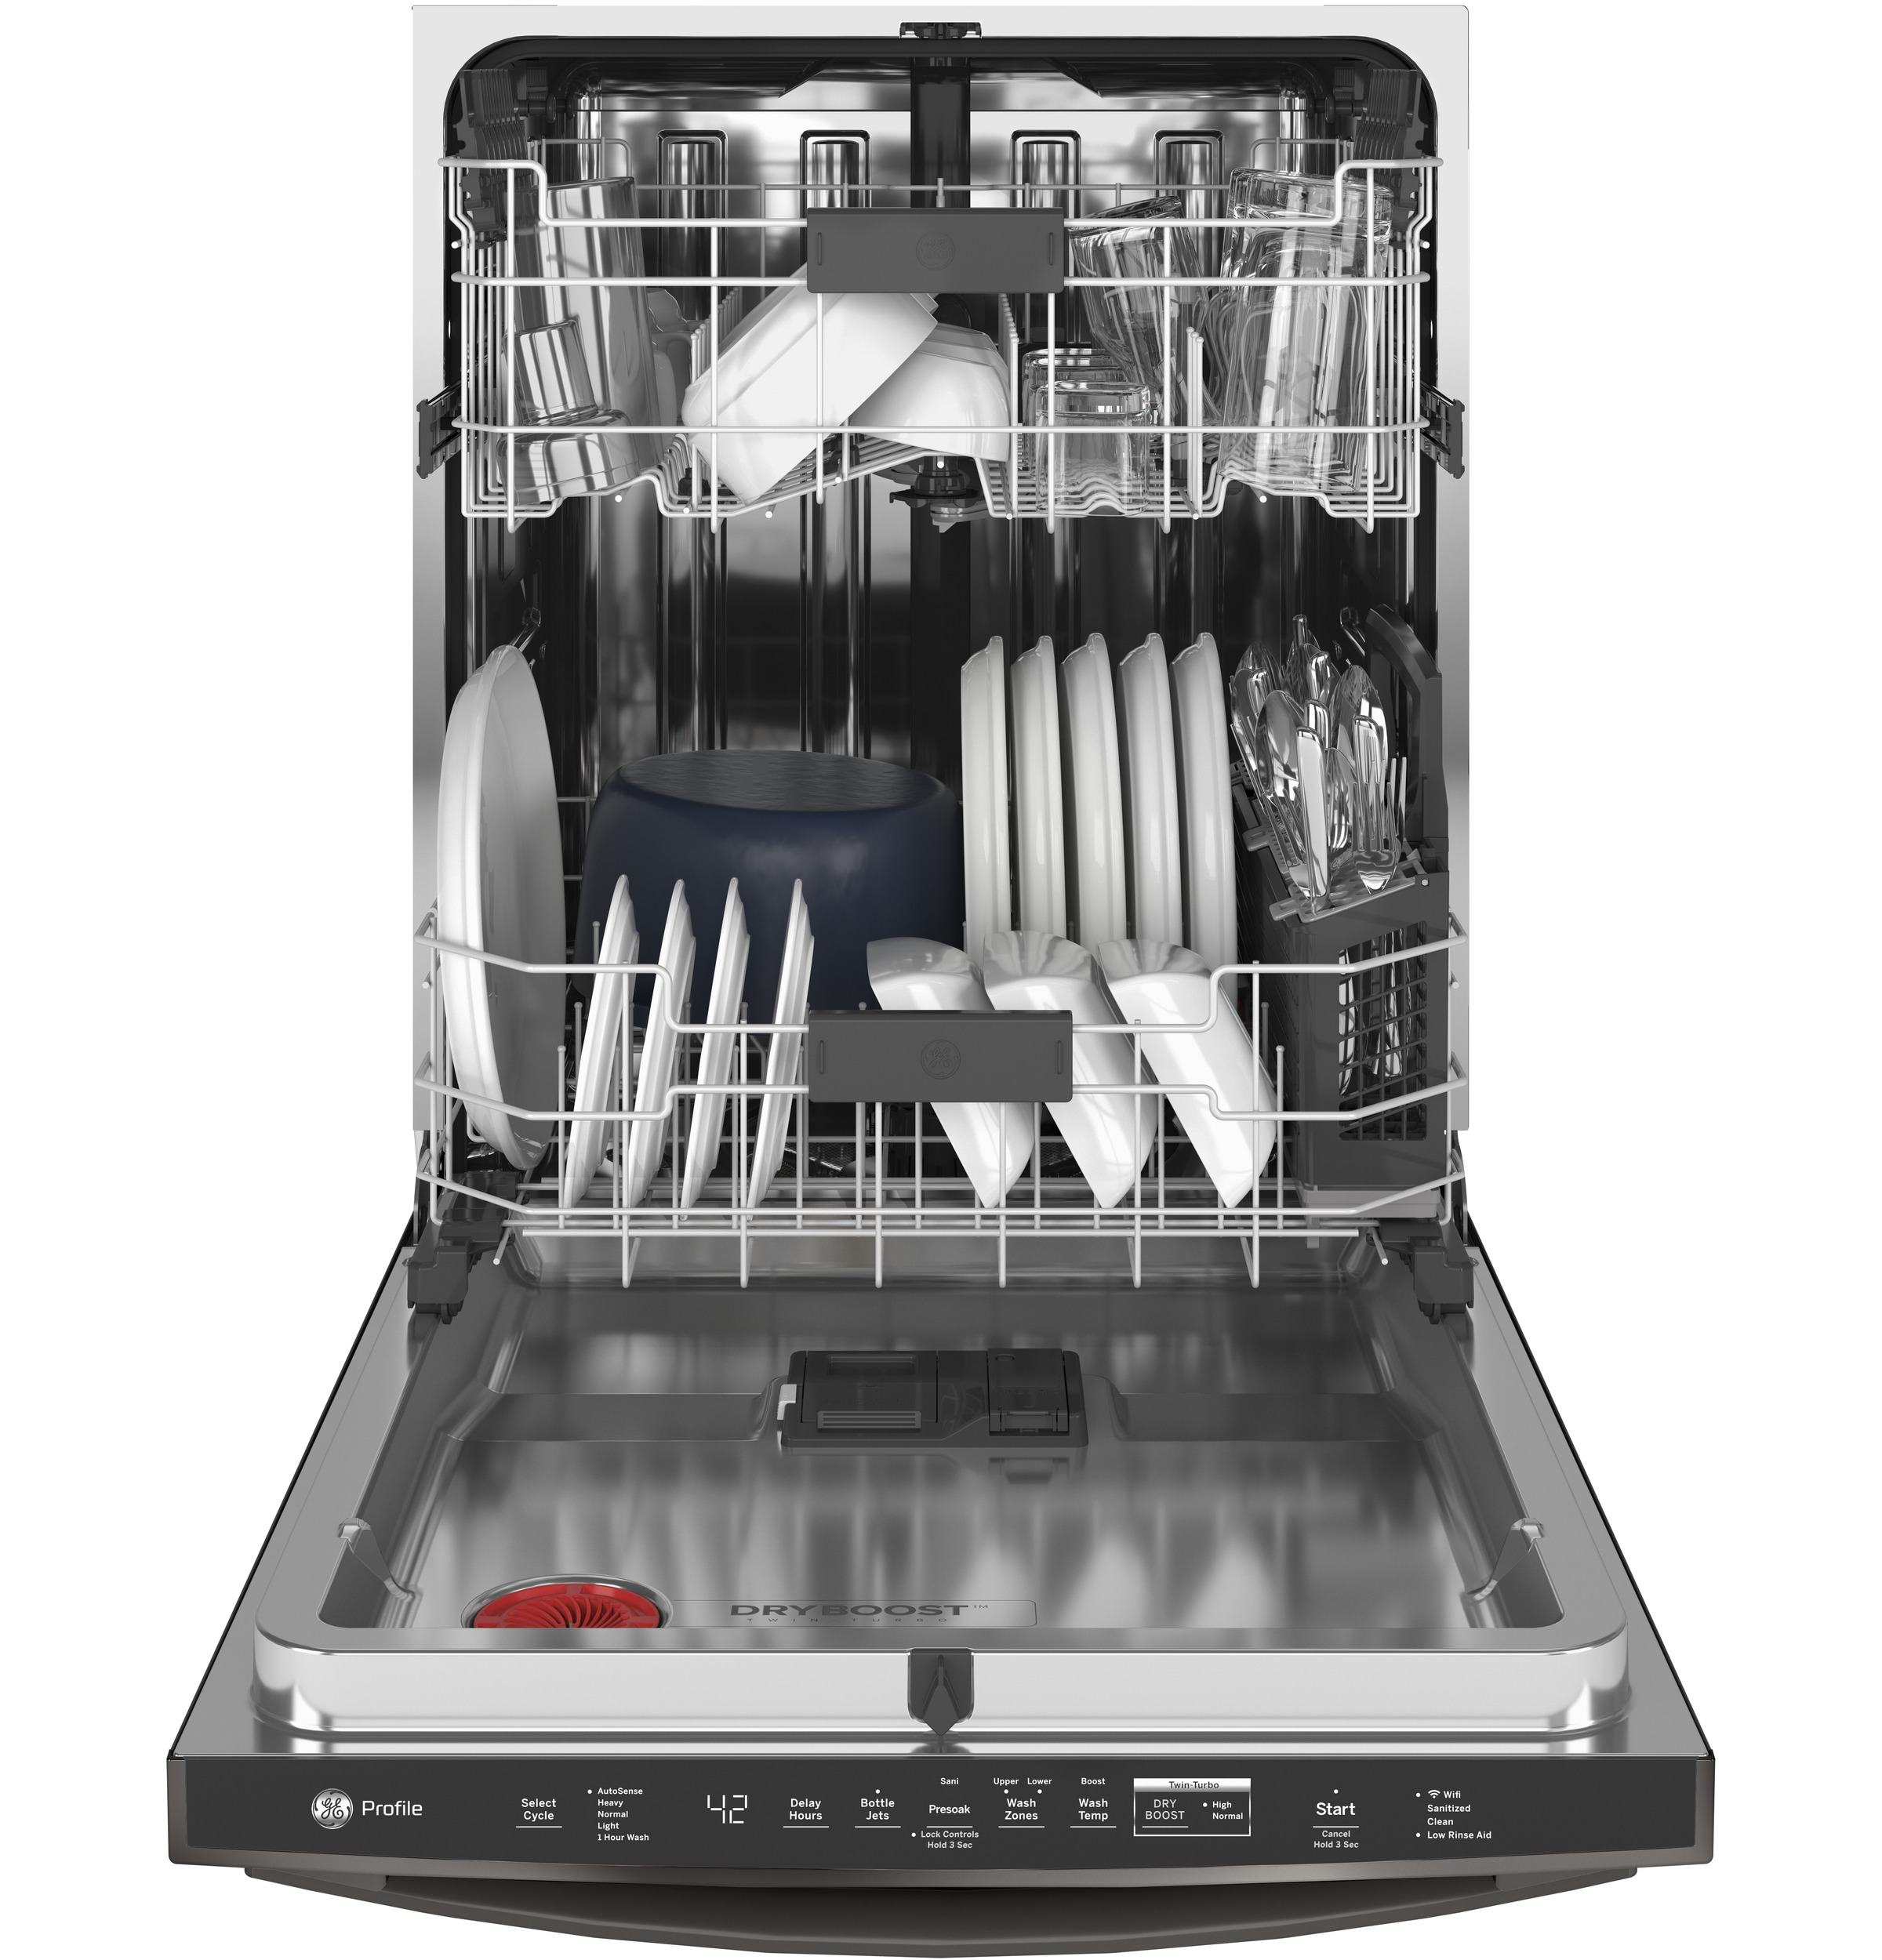 Model: PDT775SBNTS | GE Profile GE Profile™ Stainless Steel Interior Dishwasher with Hidden Controls